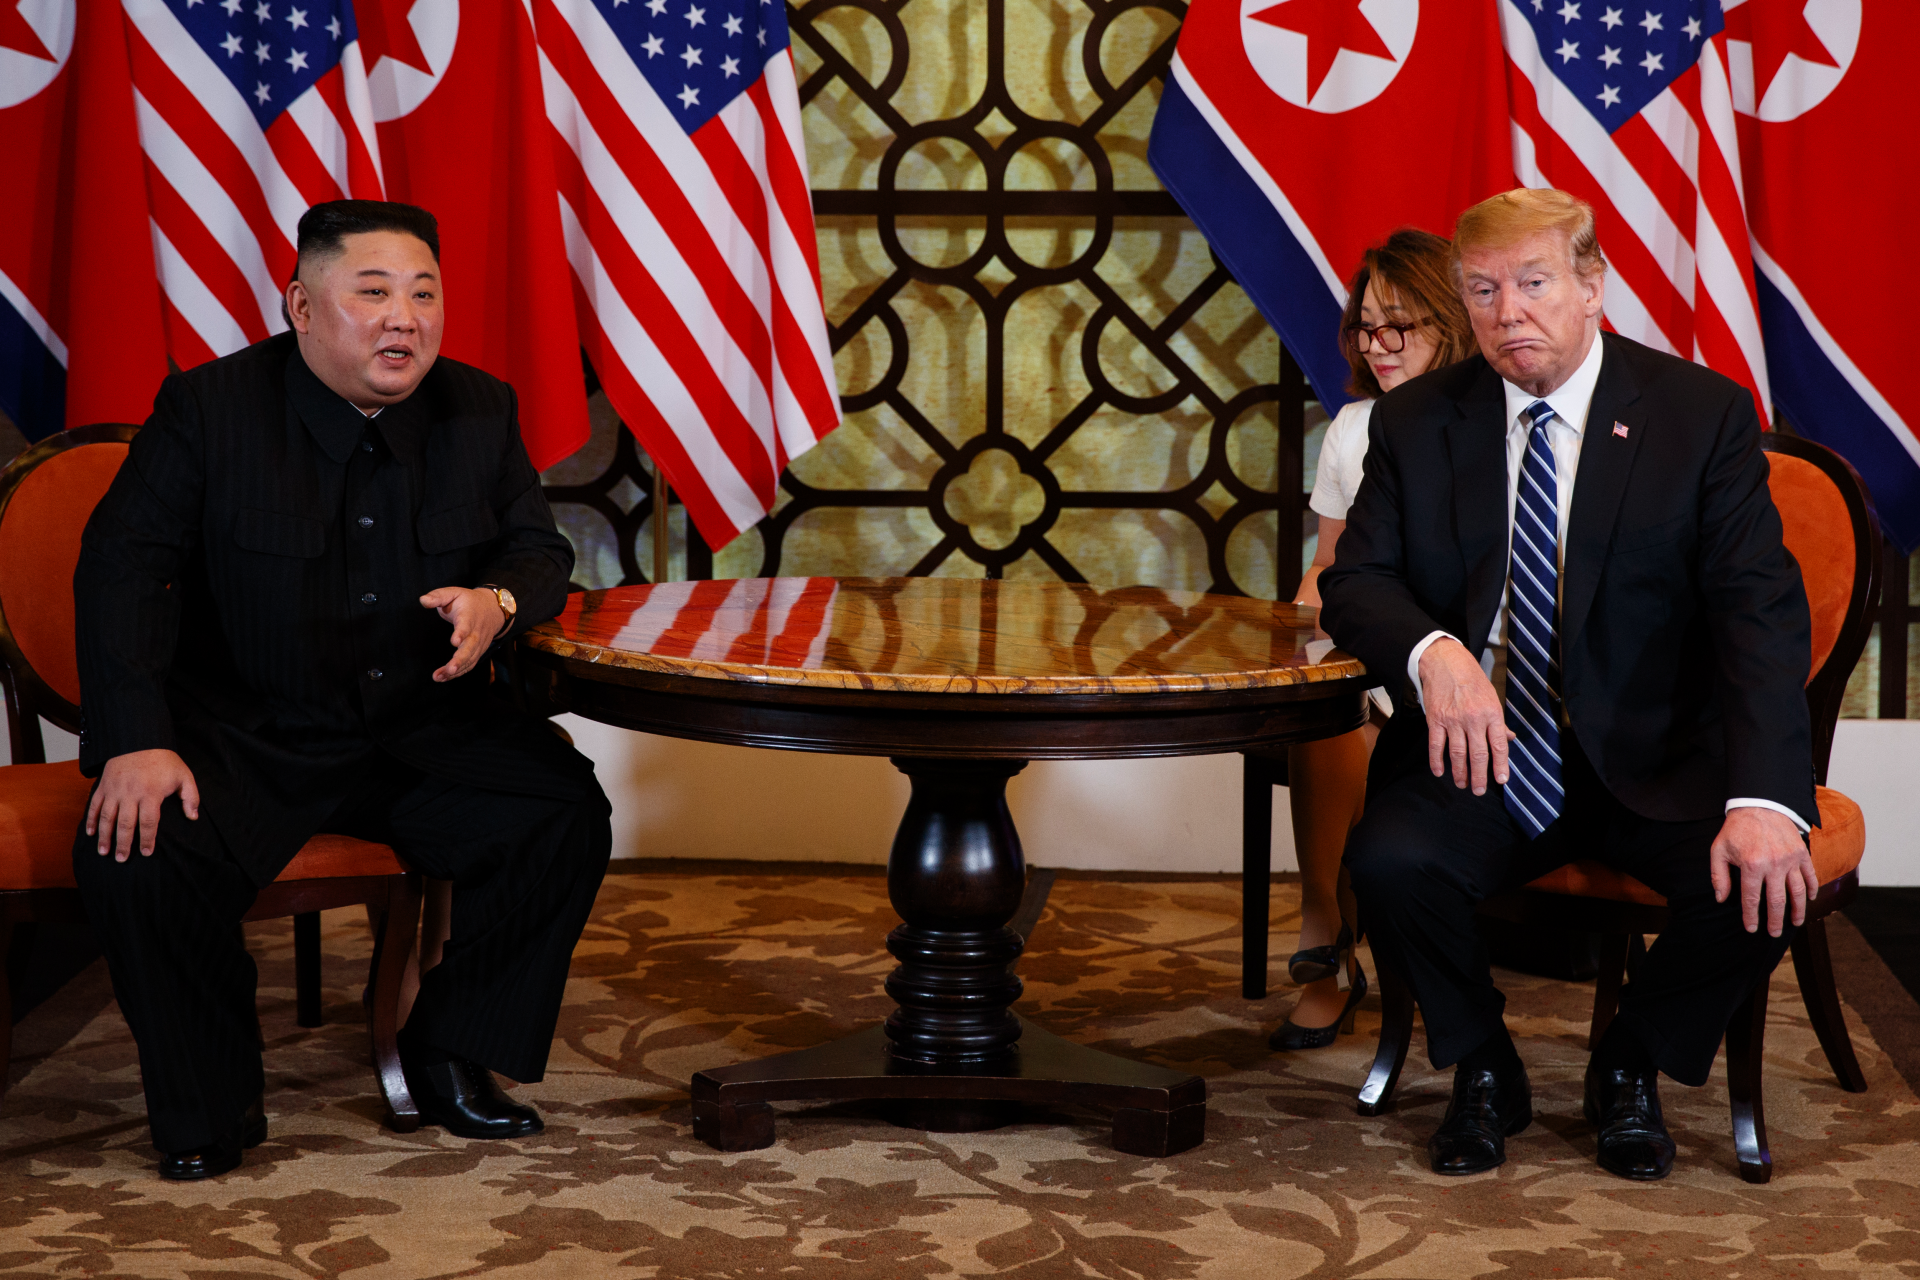 Trump wasn't prepared to lift US sanctions on North Korea leading to summit's abrupt end: 'Sometimes you ha... thumbnail